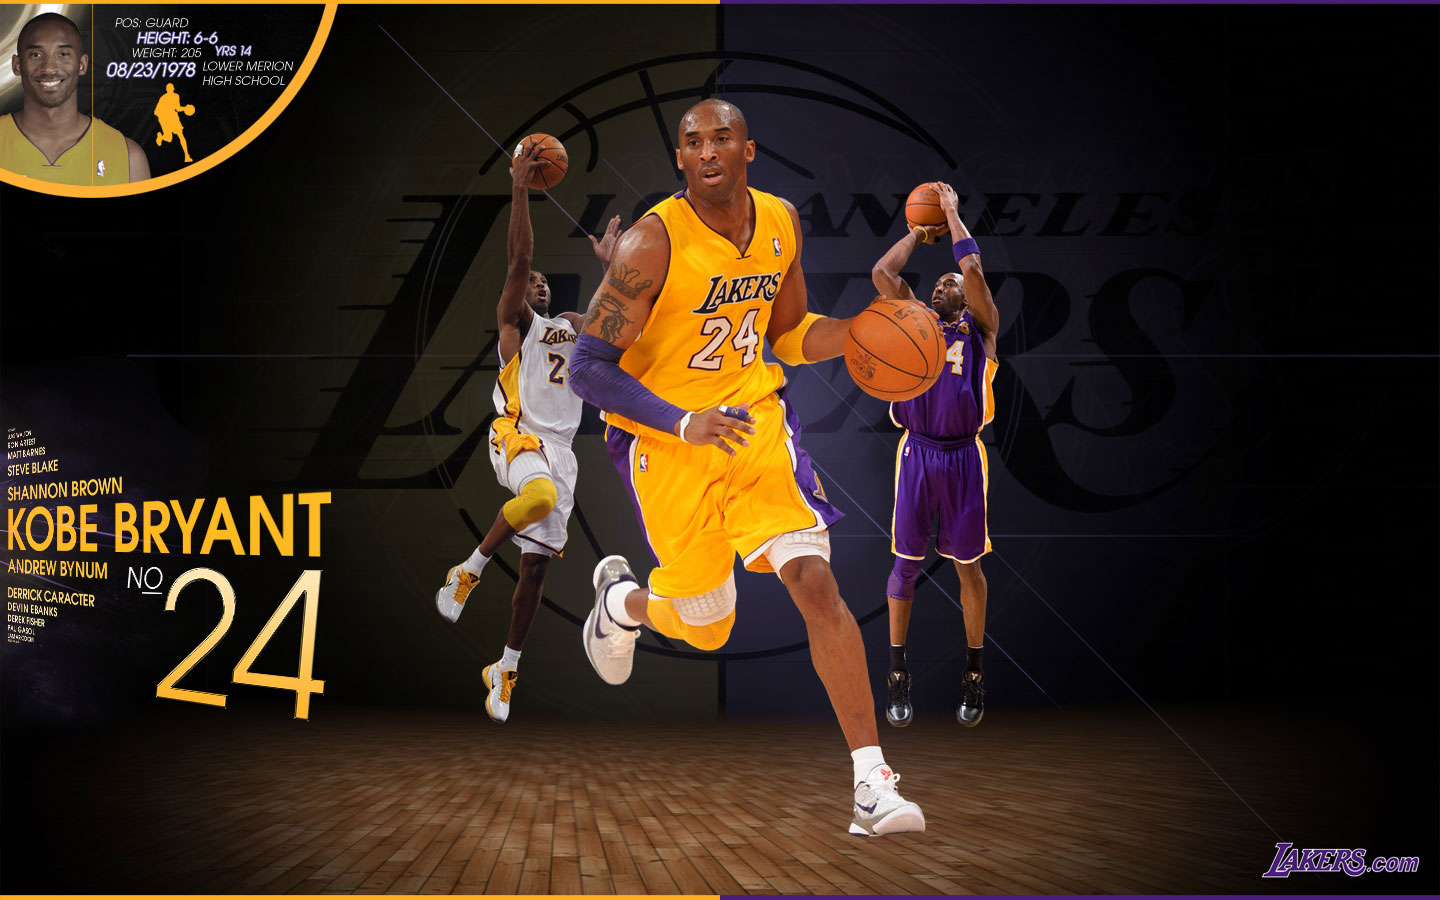 http://1.bp.blogspot.com/-IWpjrSGos1s/T72_v_kG33I/AAAAAAAAAhk/4pQETmkUsrI/s1600/Kobe-Bryant-Lakers-2012-1440x900-Wallpaper-BasketWallpapers.com-.jpg